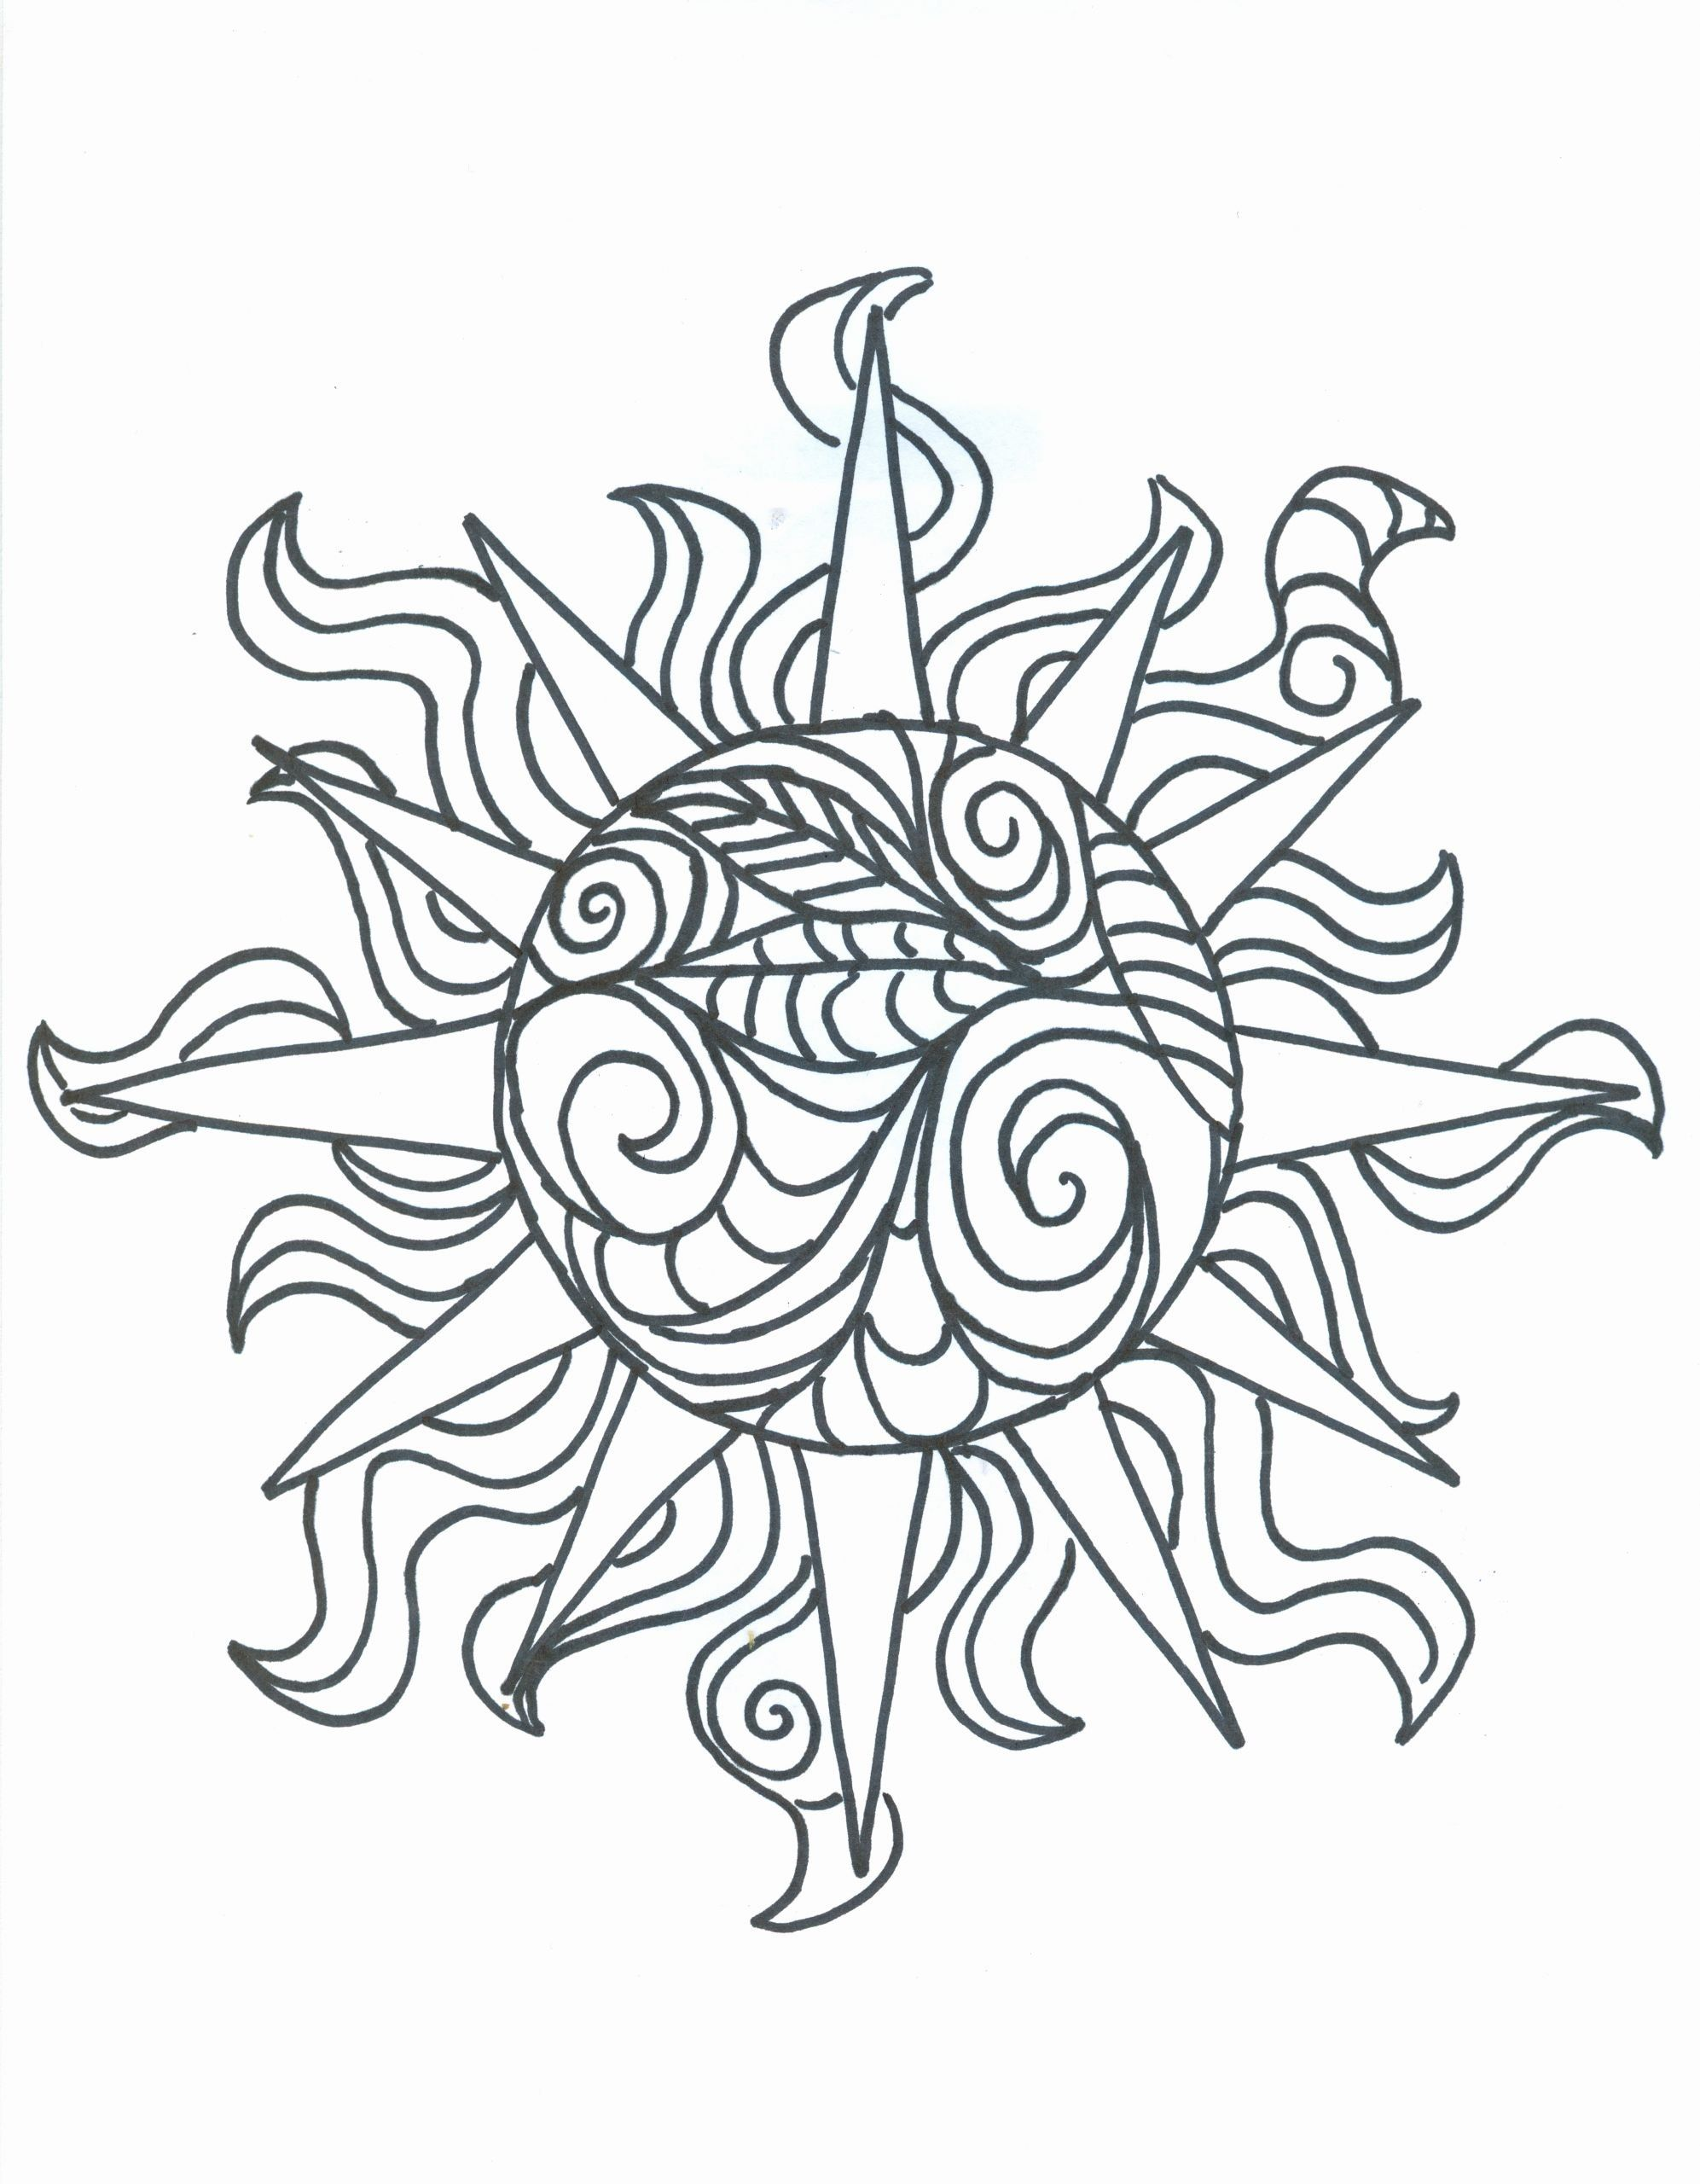 Winter Solstice Coloring Pages Luxury Winter Solstice Coloring Pages Coloring Pages Coloring Pages Coloring Pages Winter Solstice